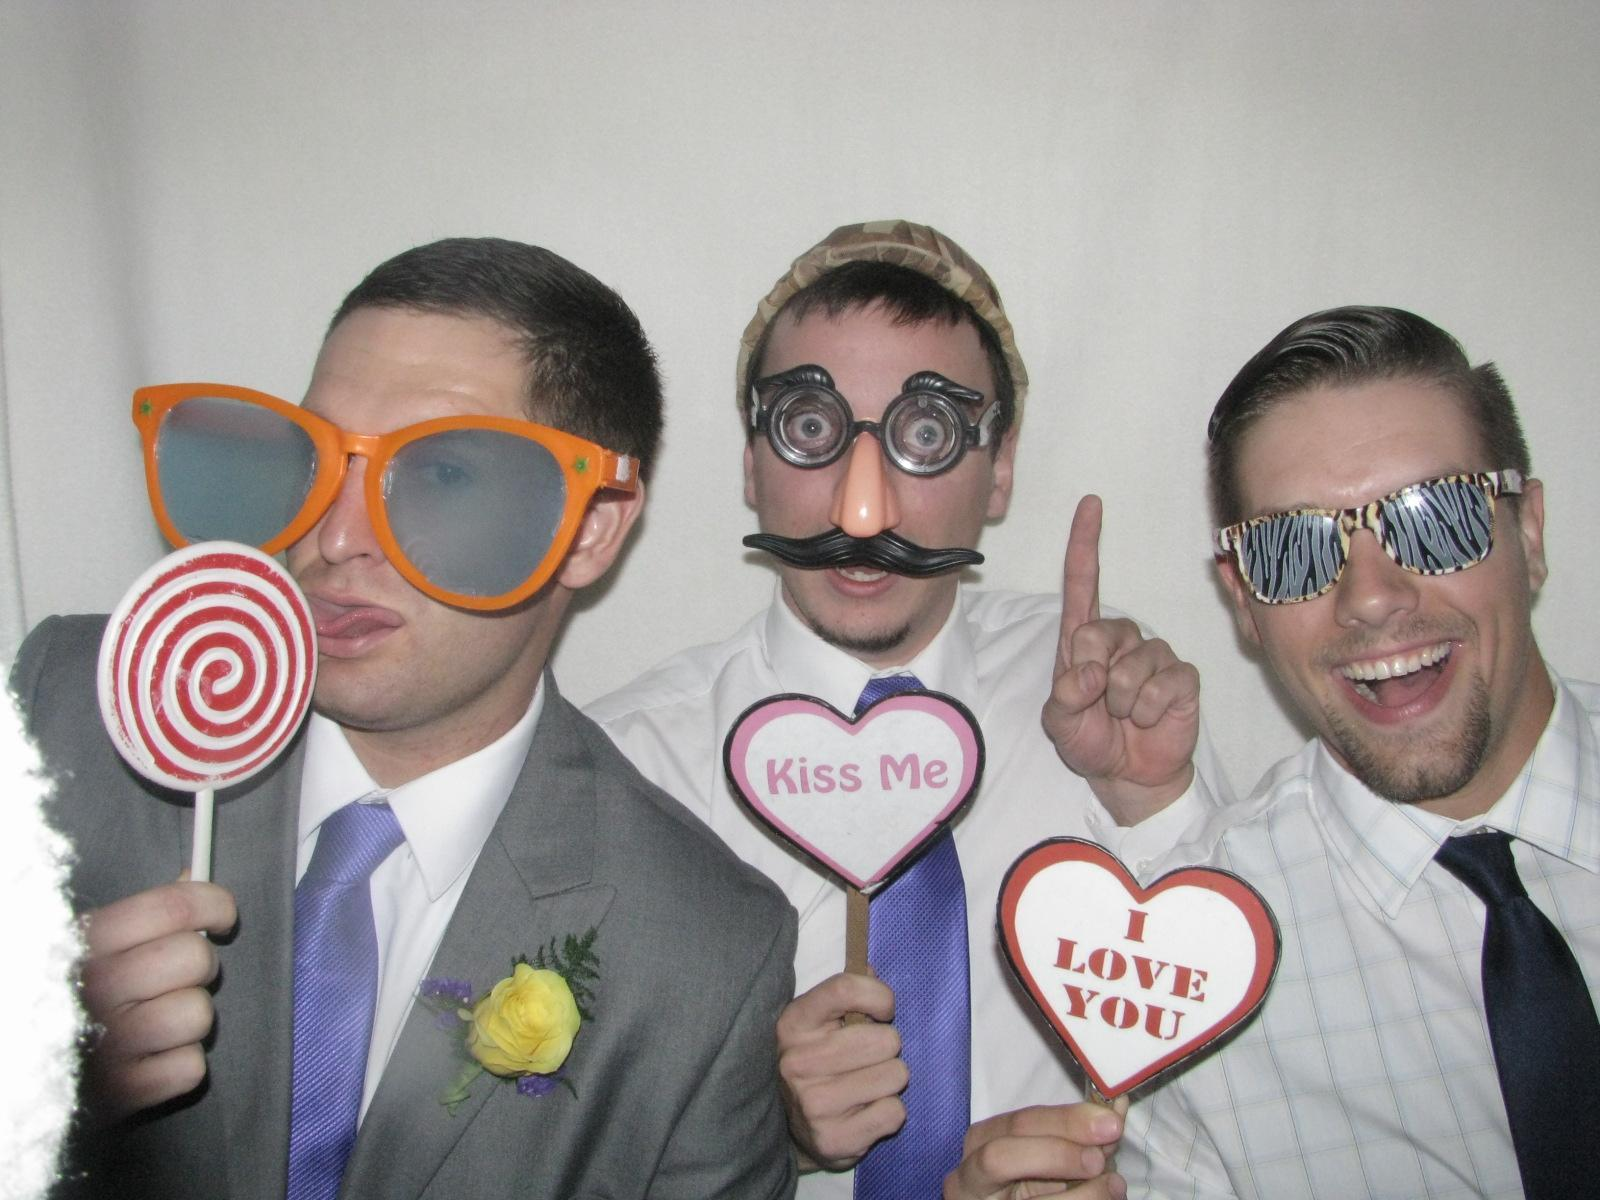 Clearly The Best Photo Booths